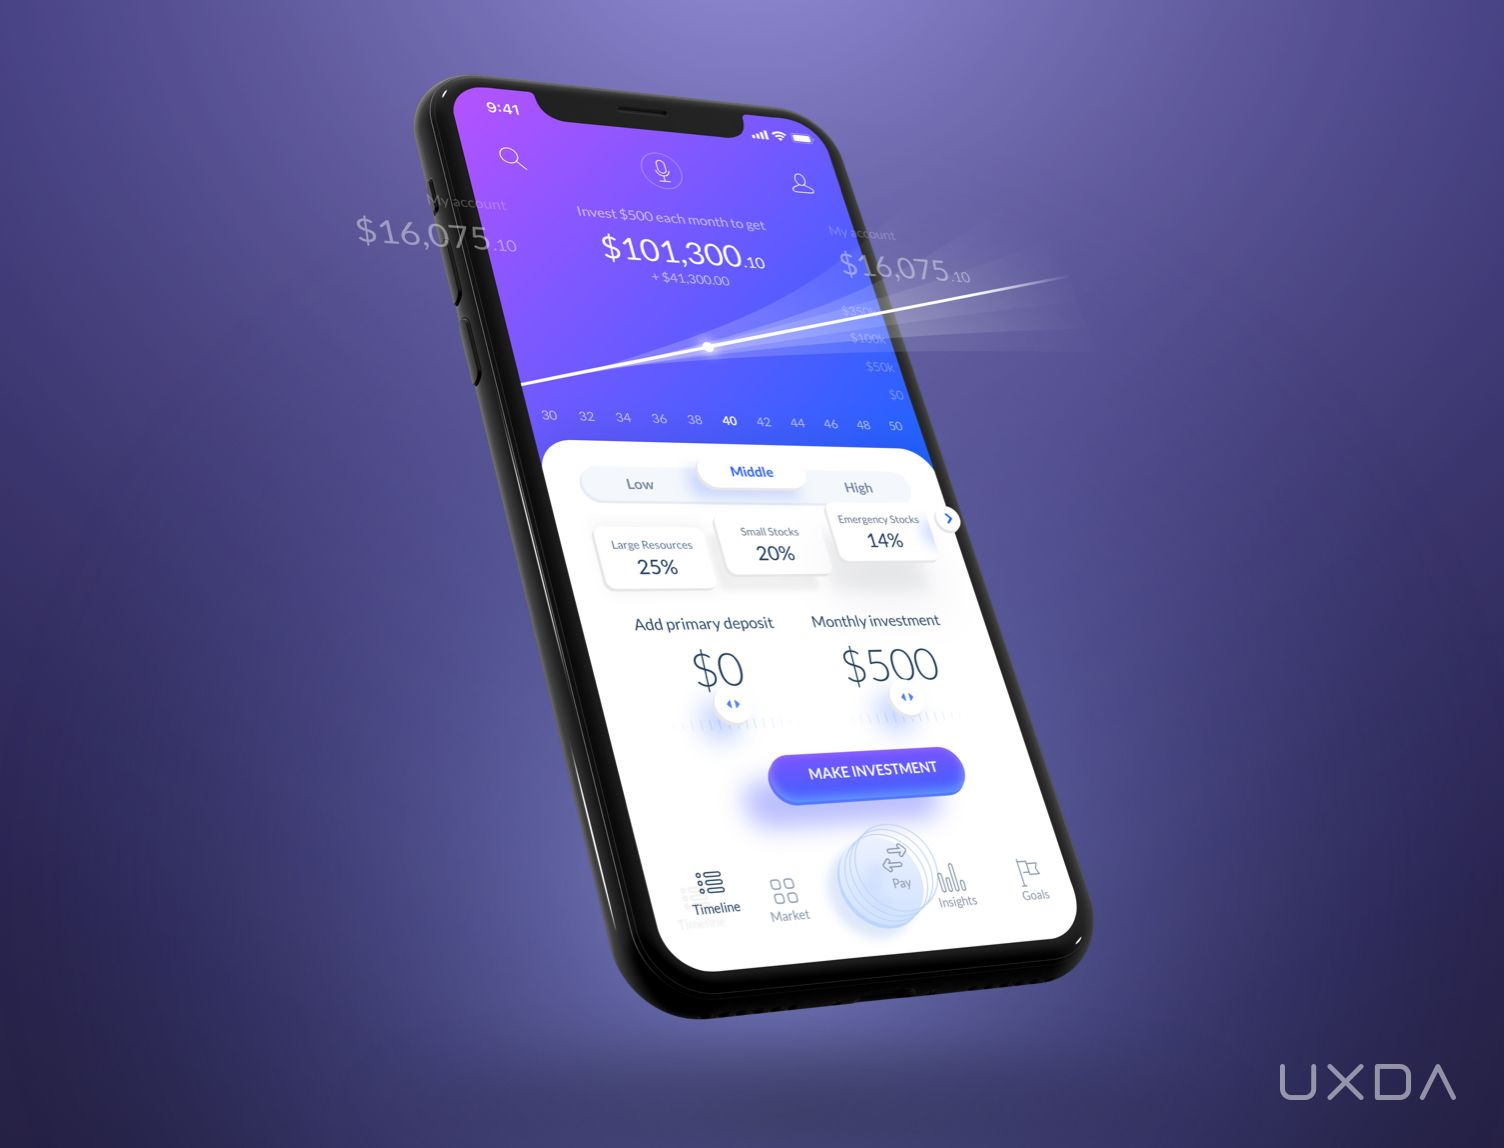 Ux Case Study How To Create A Mobile Banking Super App Uxda In 2020 Mobile Banking Banking App Banking Trends